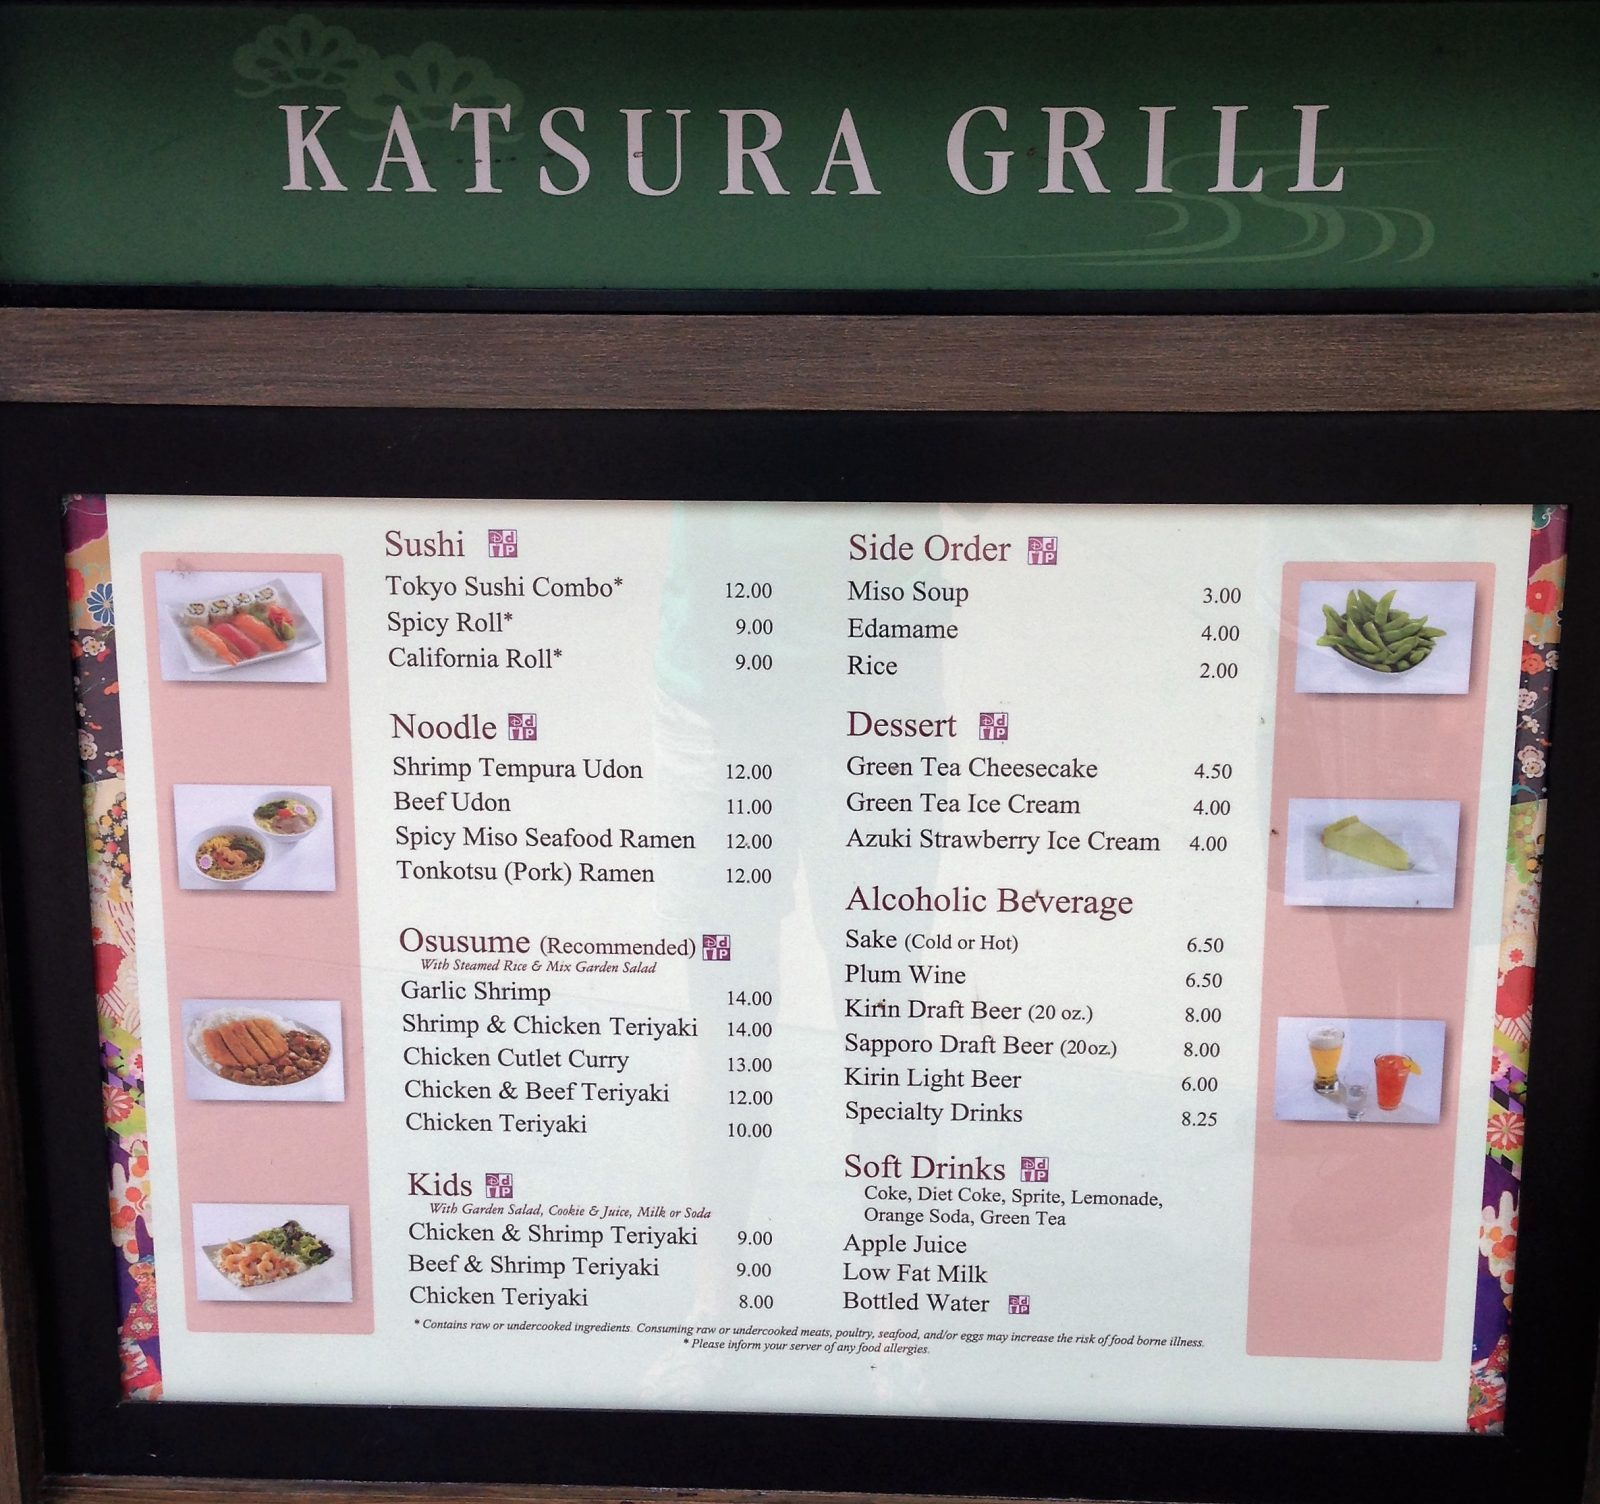 katsura grill menu sign with food photos and pricing